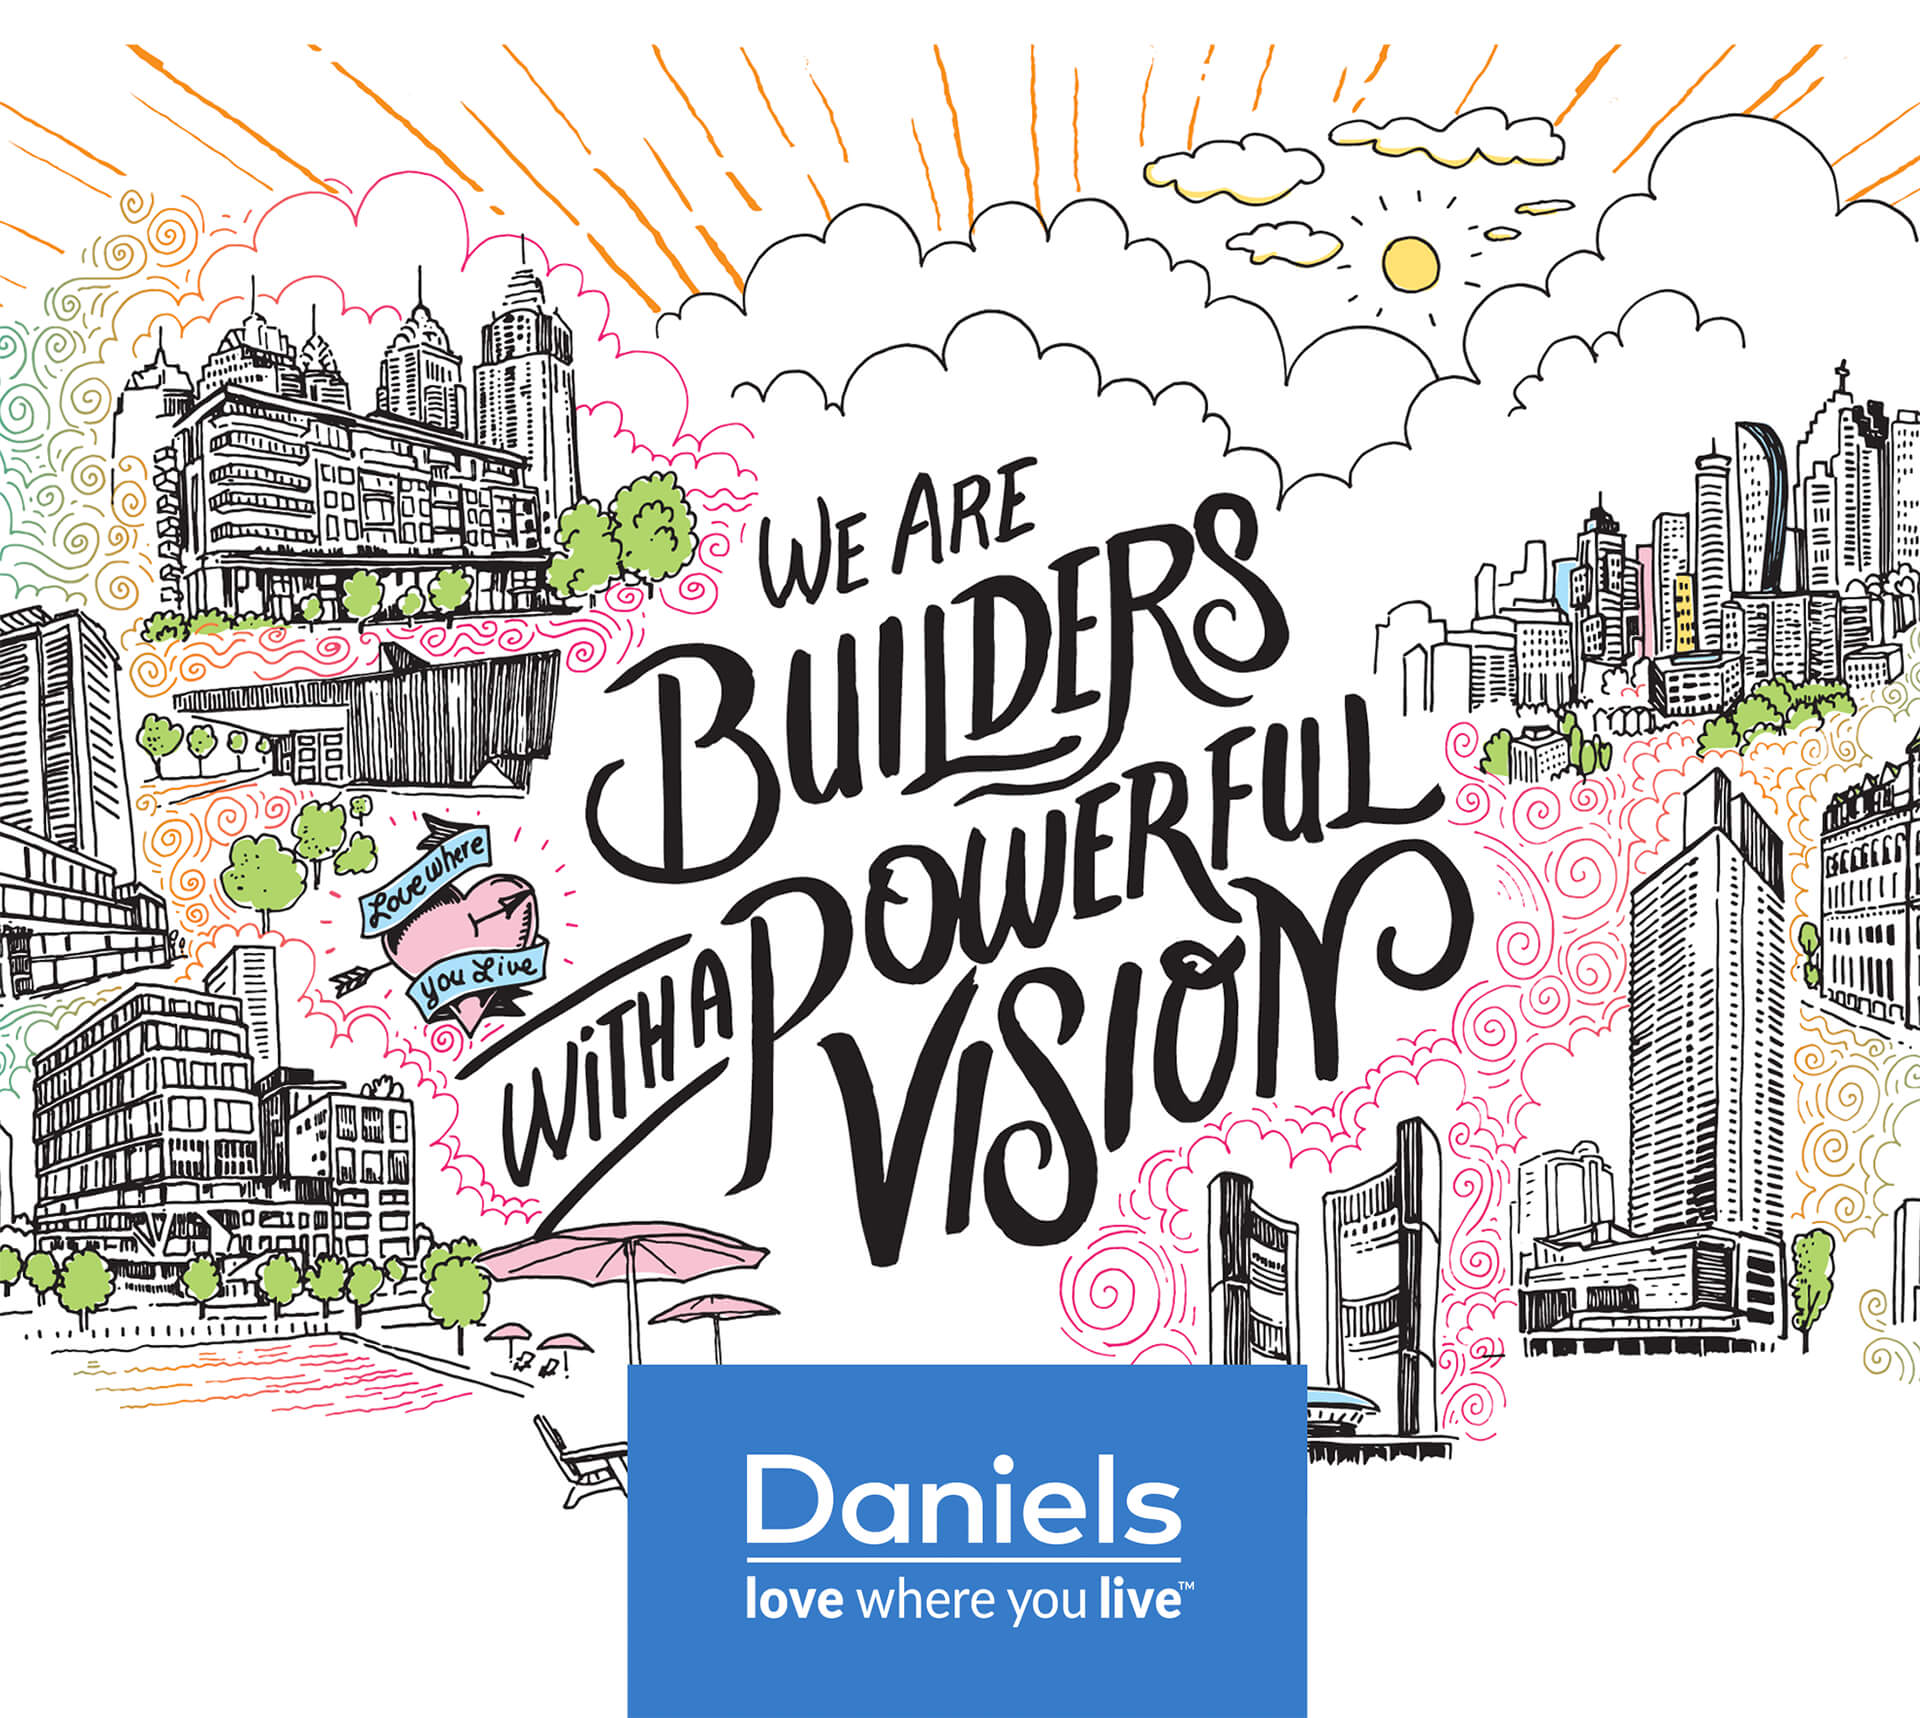 We are builders with a powerful vision - Daniels, love where you live